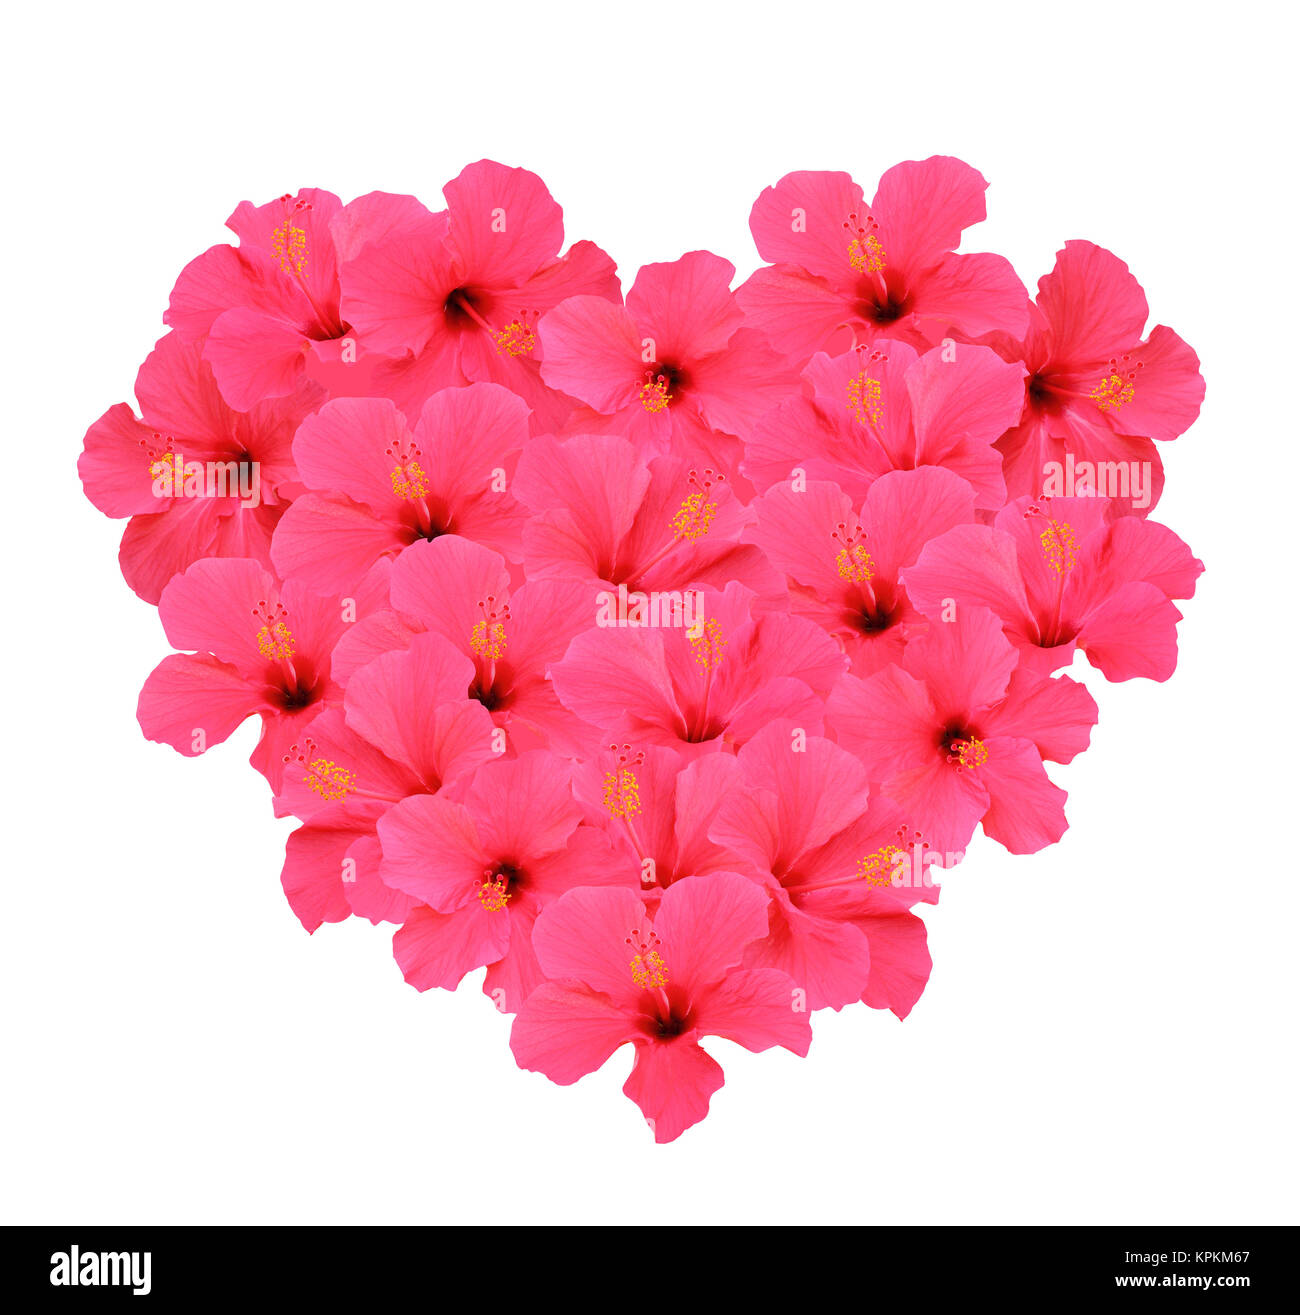 Heart Shape Bouquet Made Of Hibiscus Flowers Isolated On White